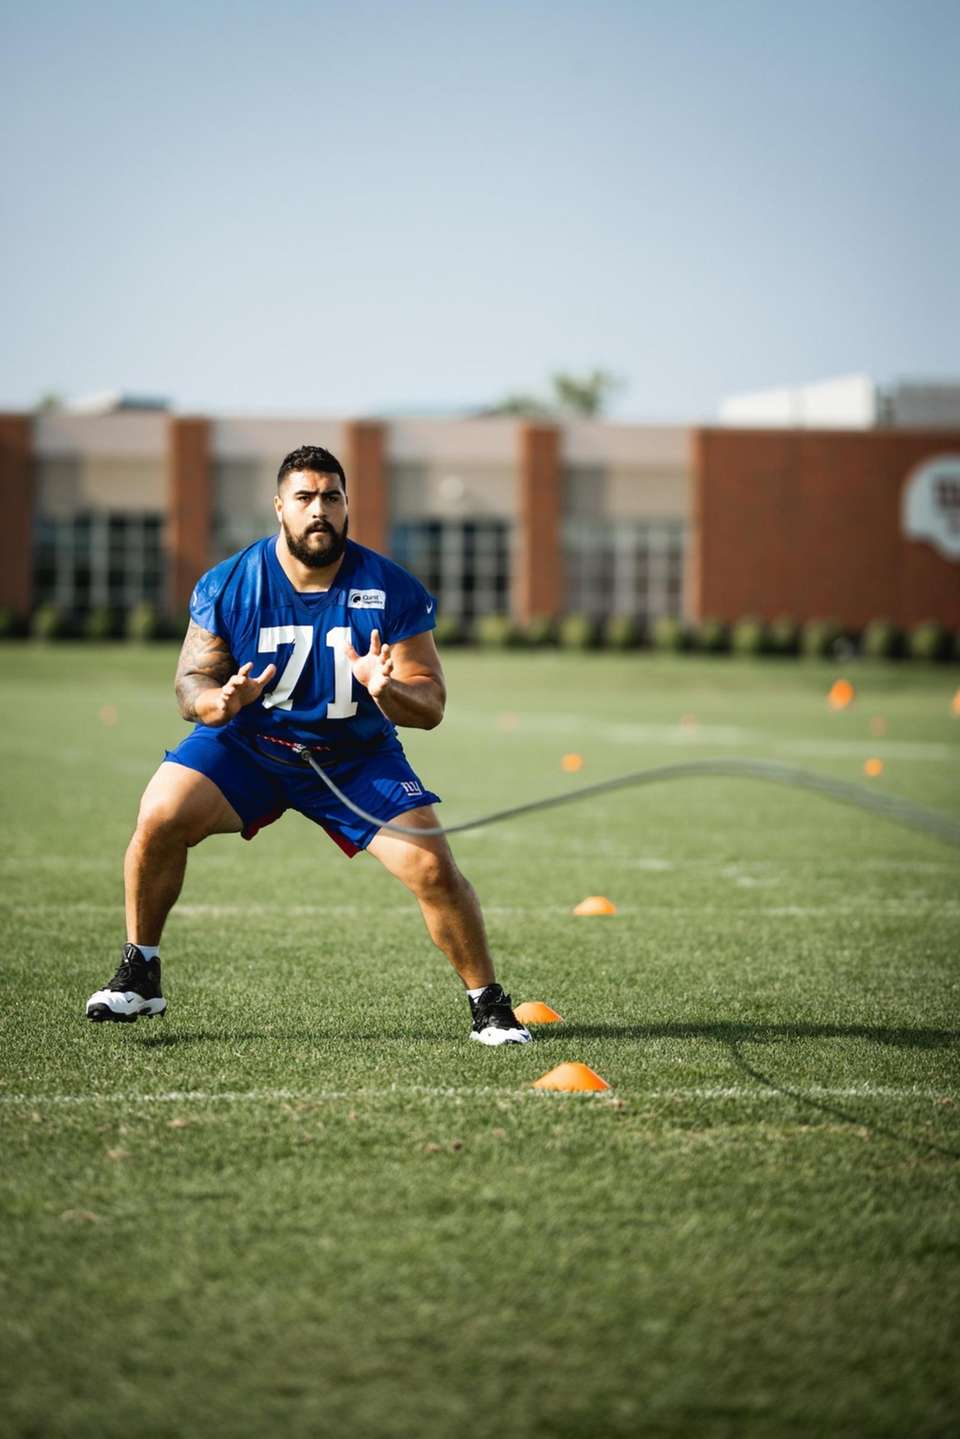 Giants lineman Will Hernandez participates in training camp